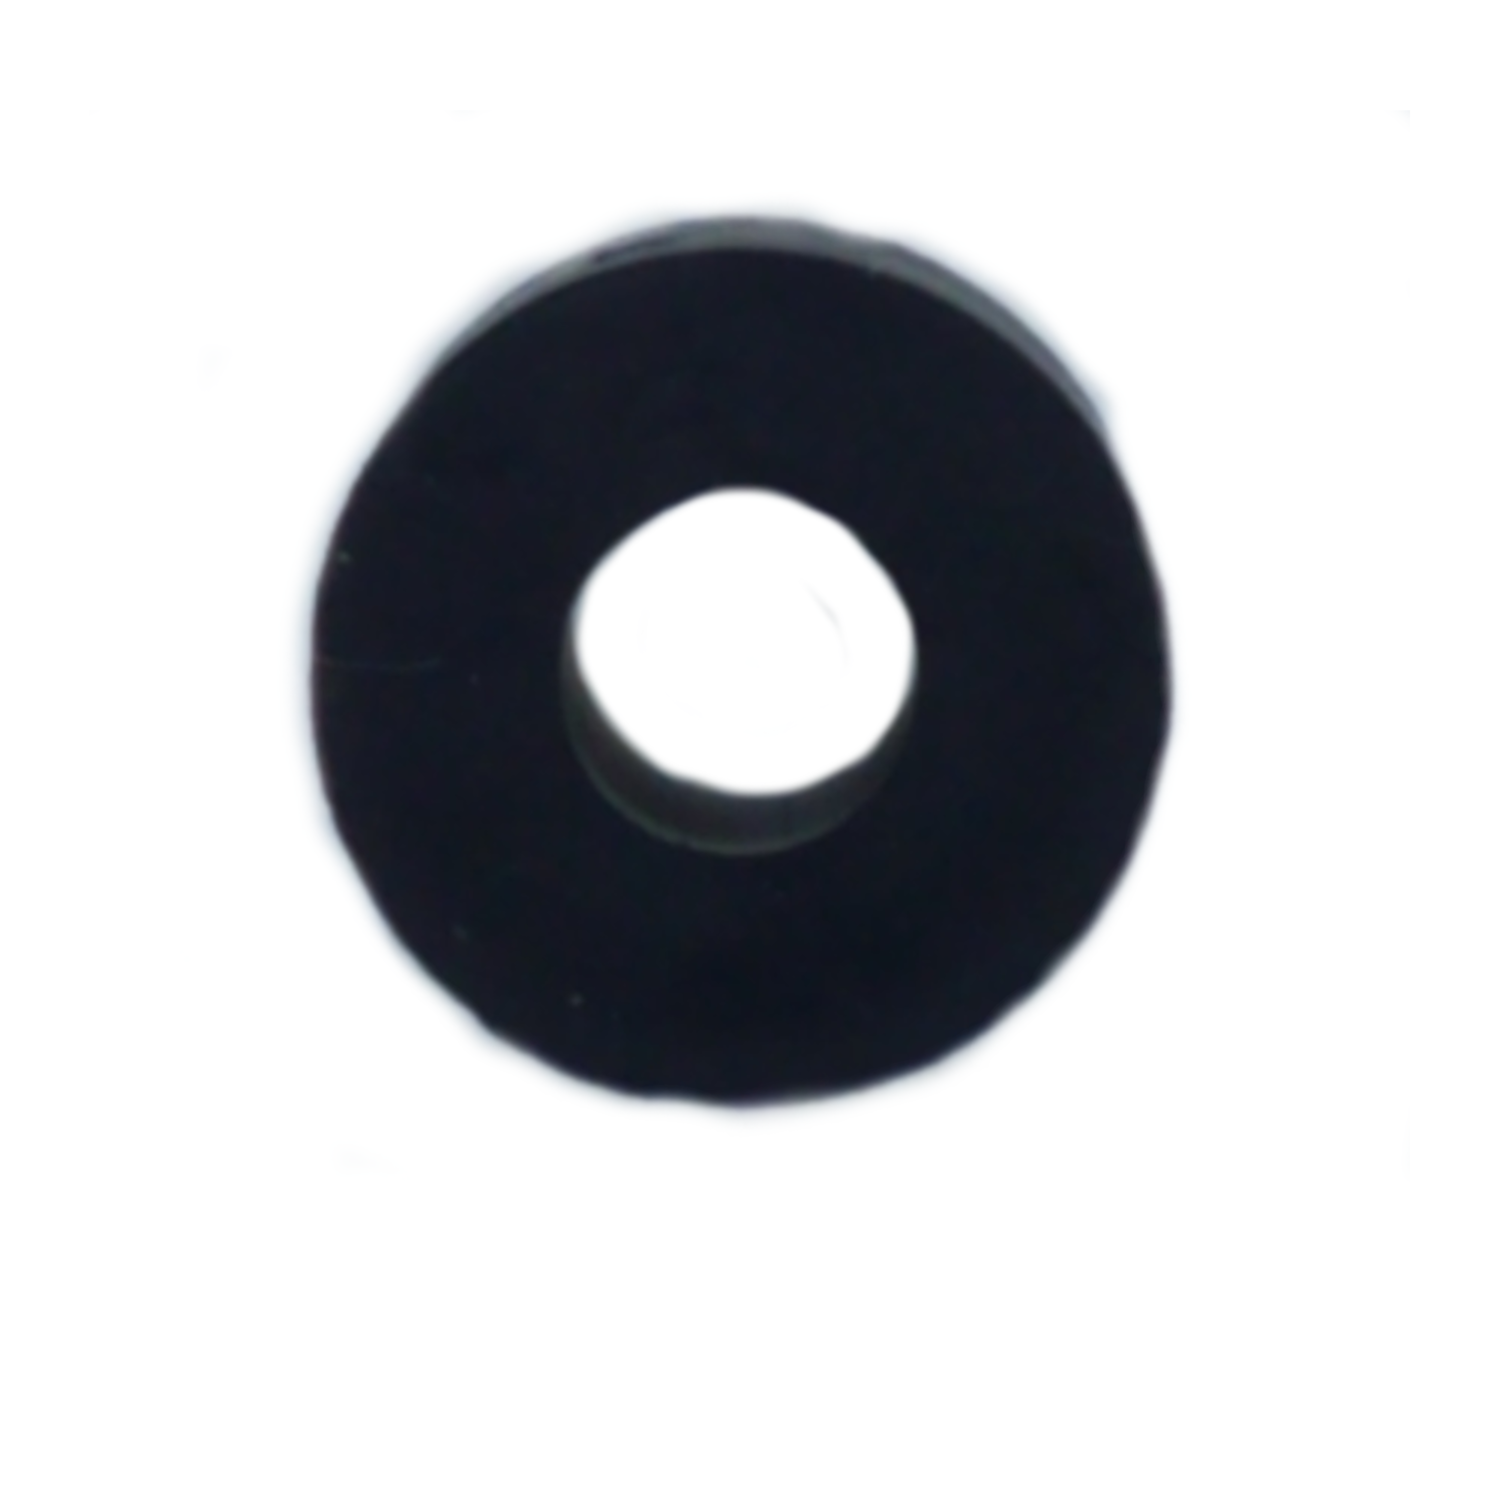 """MK Unique Designs Reed Bushings Fits J.C. Reeds &1/2"""" Hole In Call  10 Pack"""